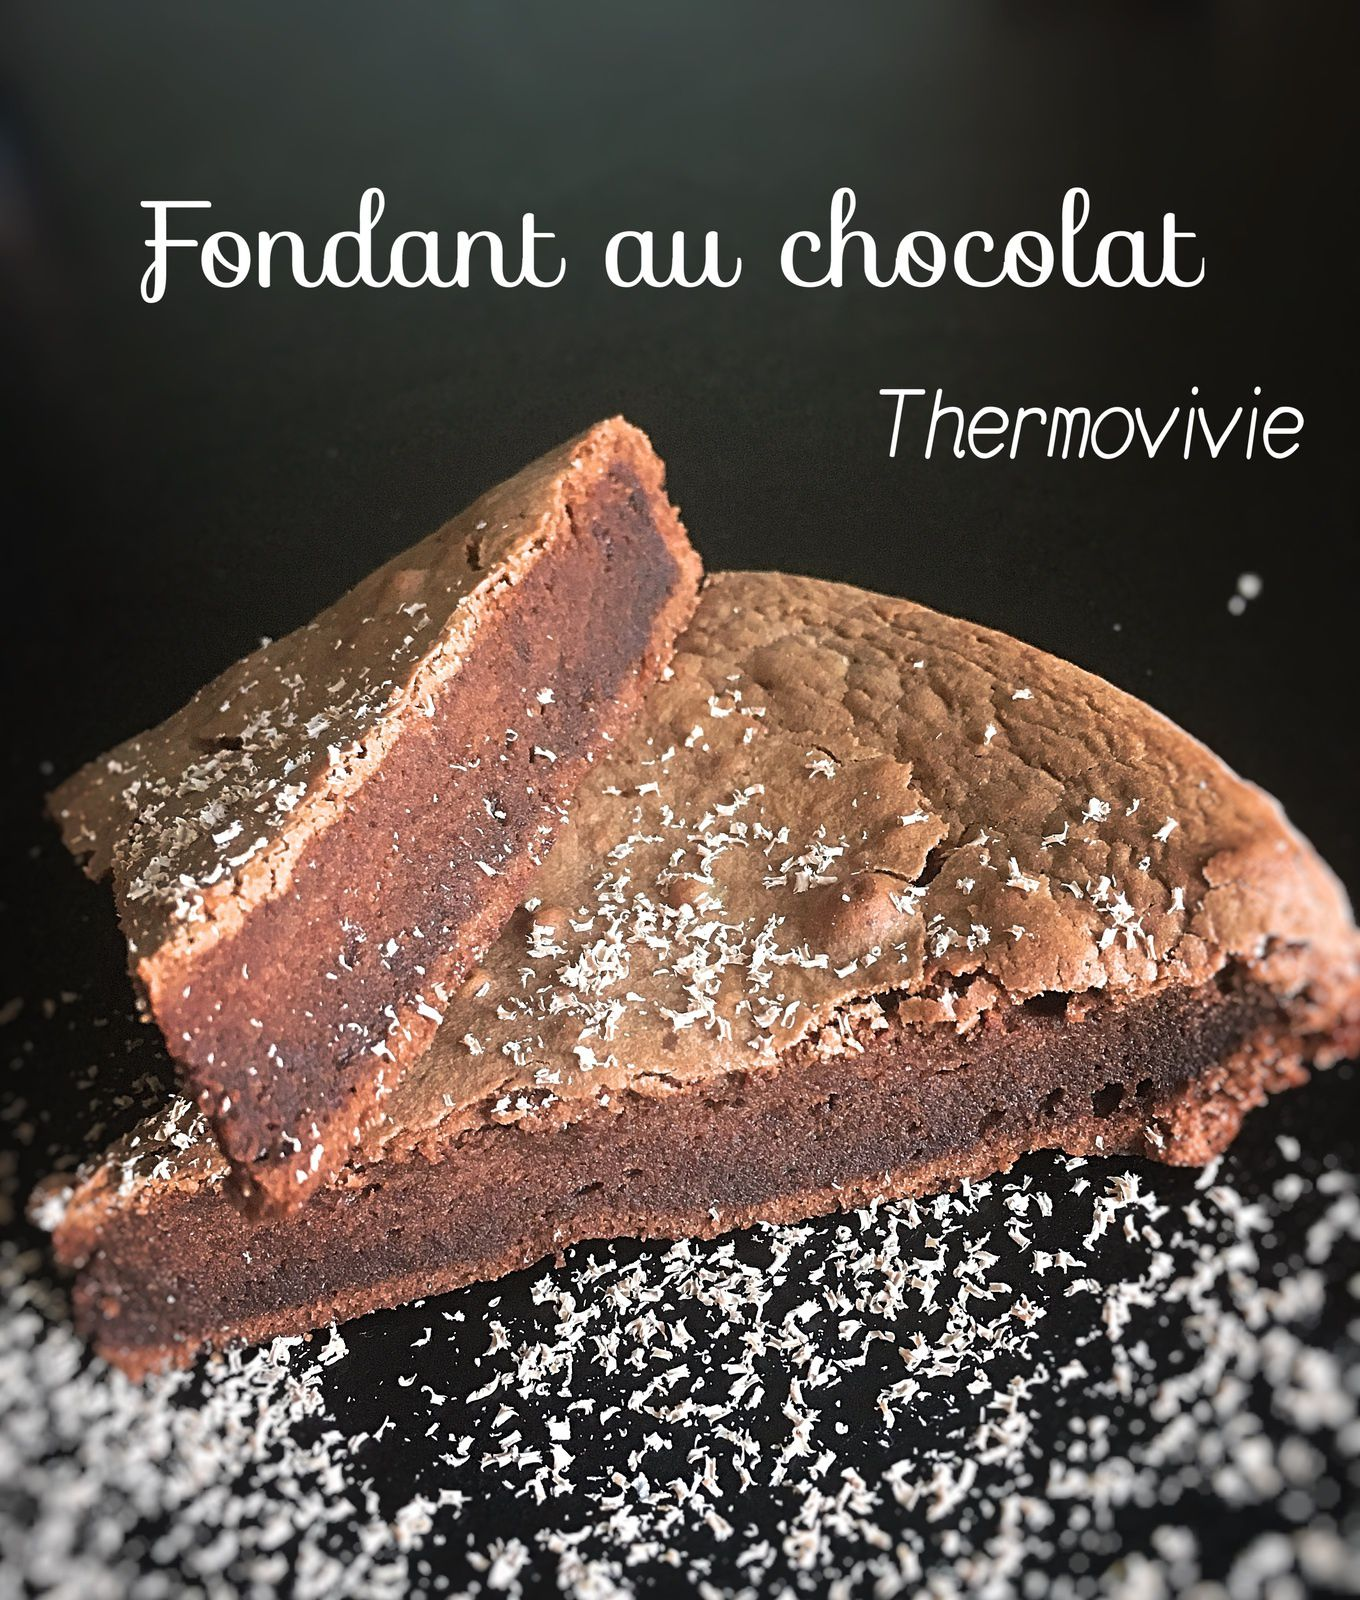 Fondant Au Chocolat Au Thermomix Recette De Cyril Lignac Thermovivie